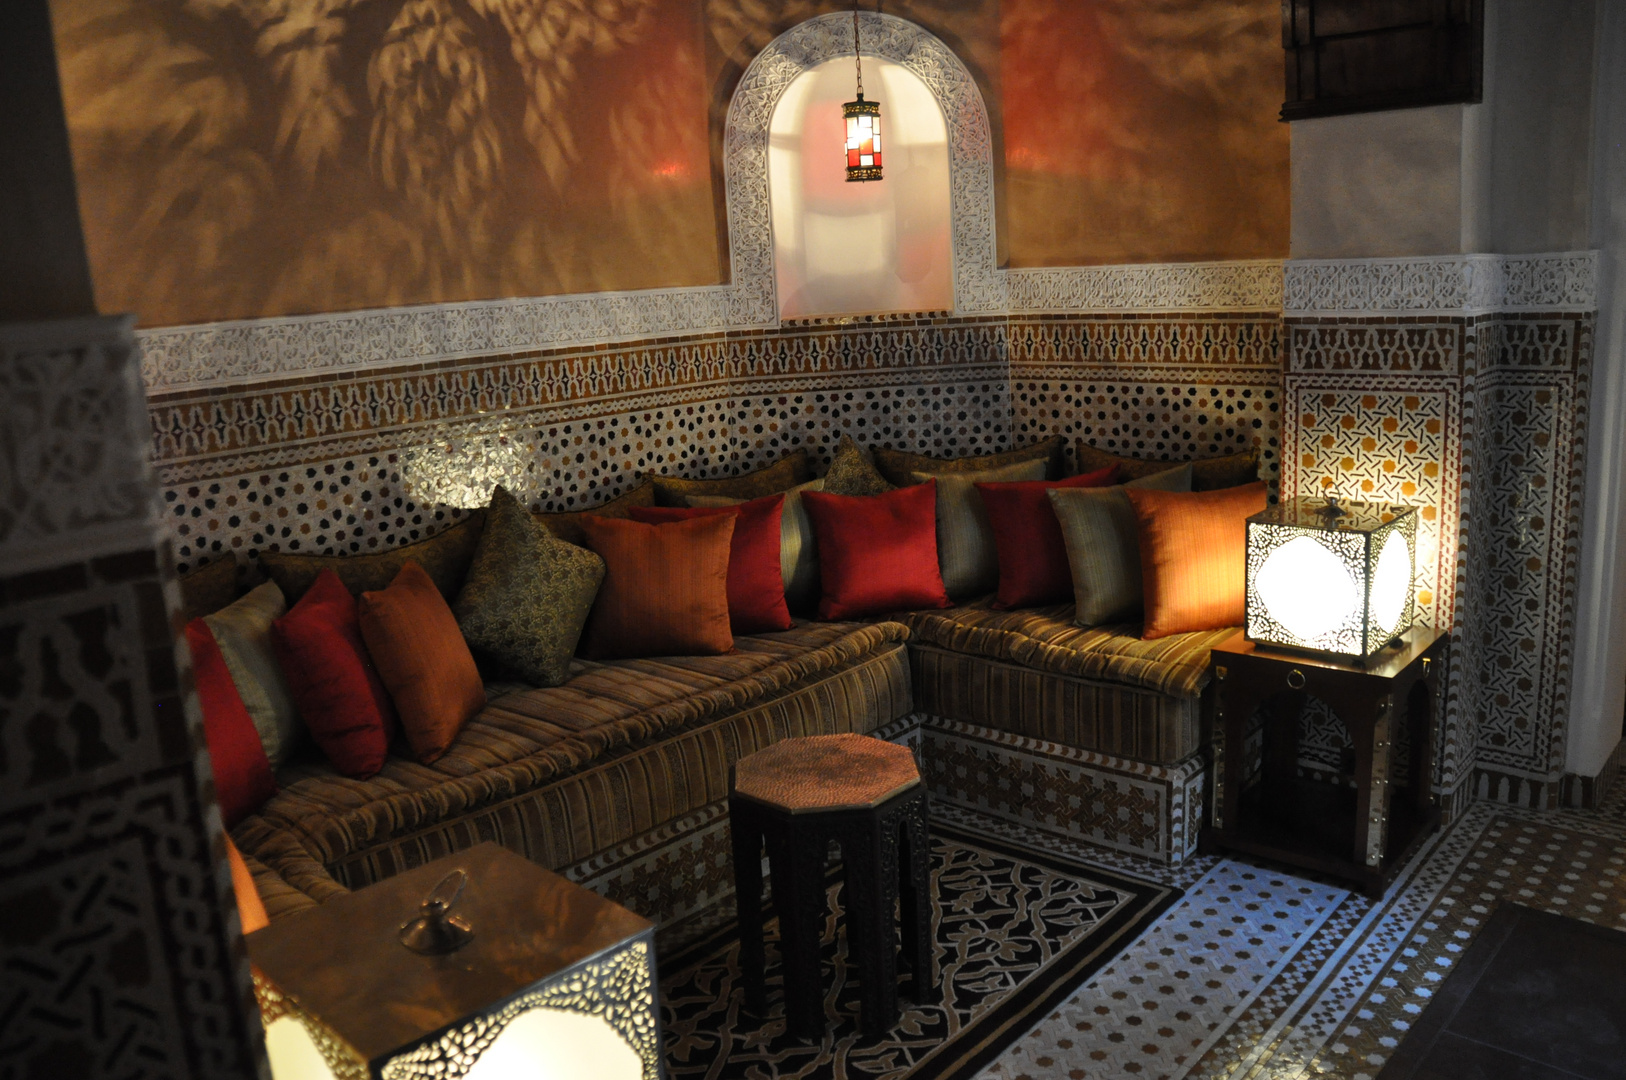 Royal Mansour - owned by the king